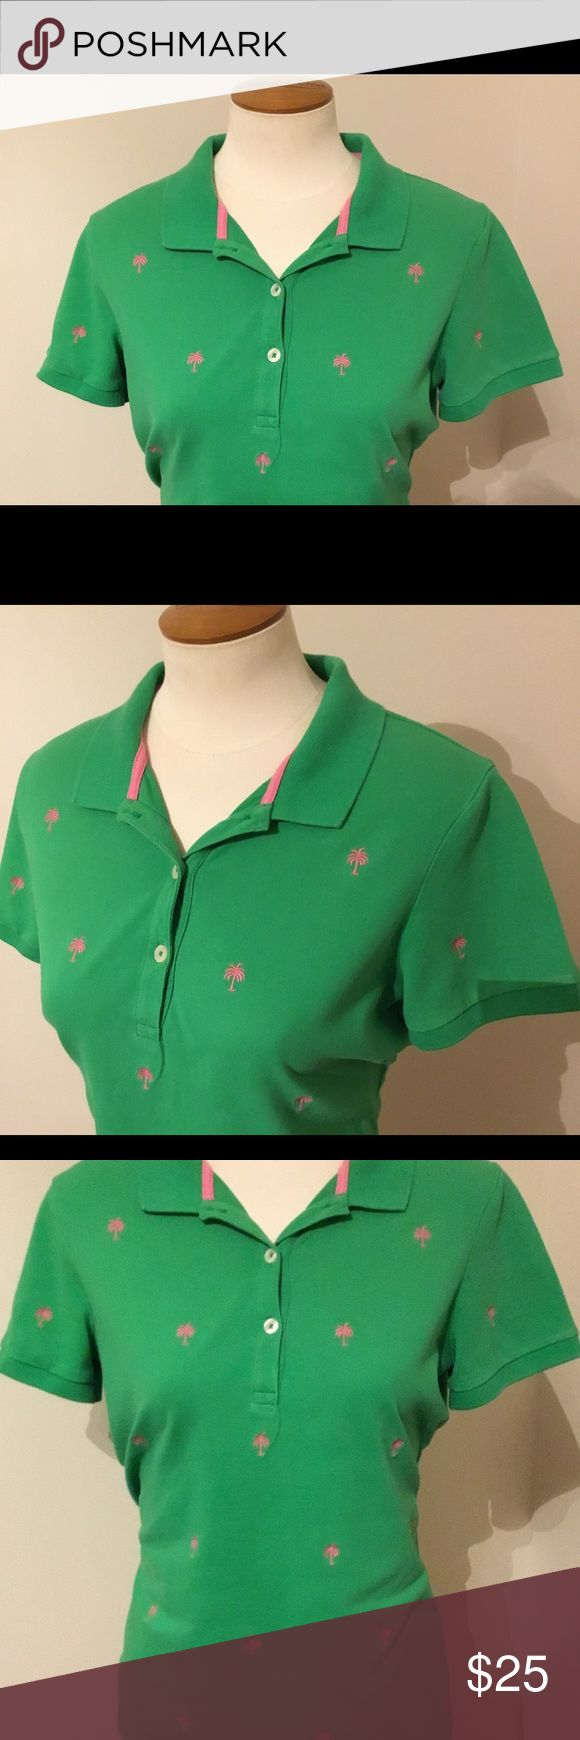 """Lilly Pulitzer Green Polo Shirt Pink Palm Trees M Lilly Pulitzer  Medium  Bust 36"""" Length 24.5"""" Excellent preowned condition Lilly Pulitzer Tops"""